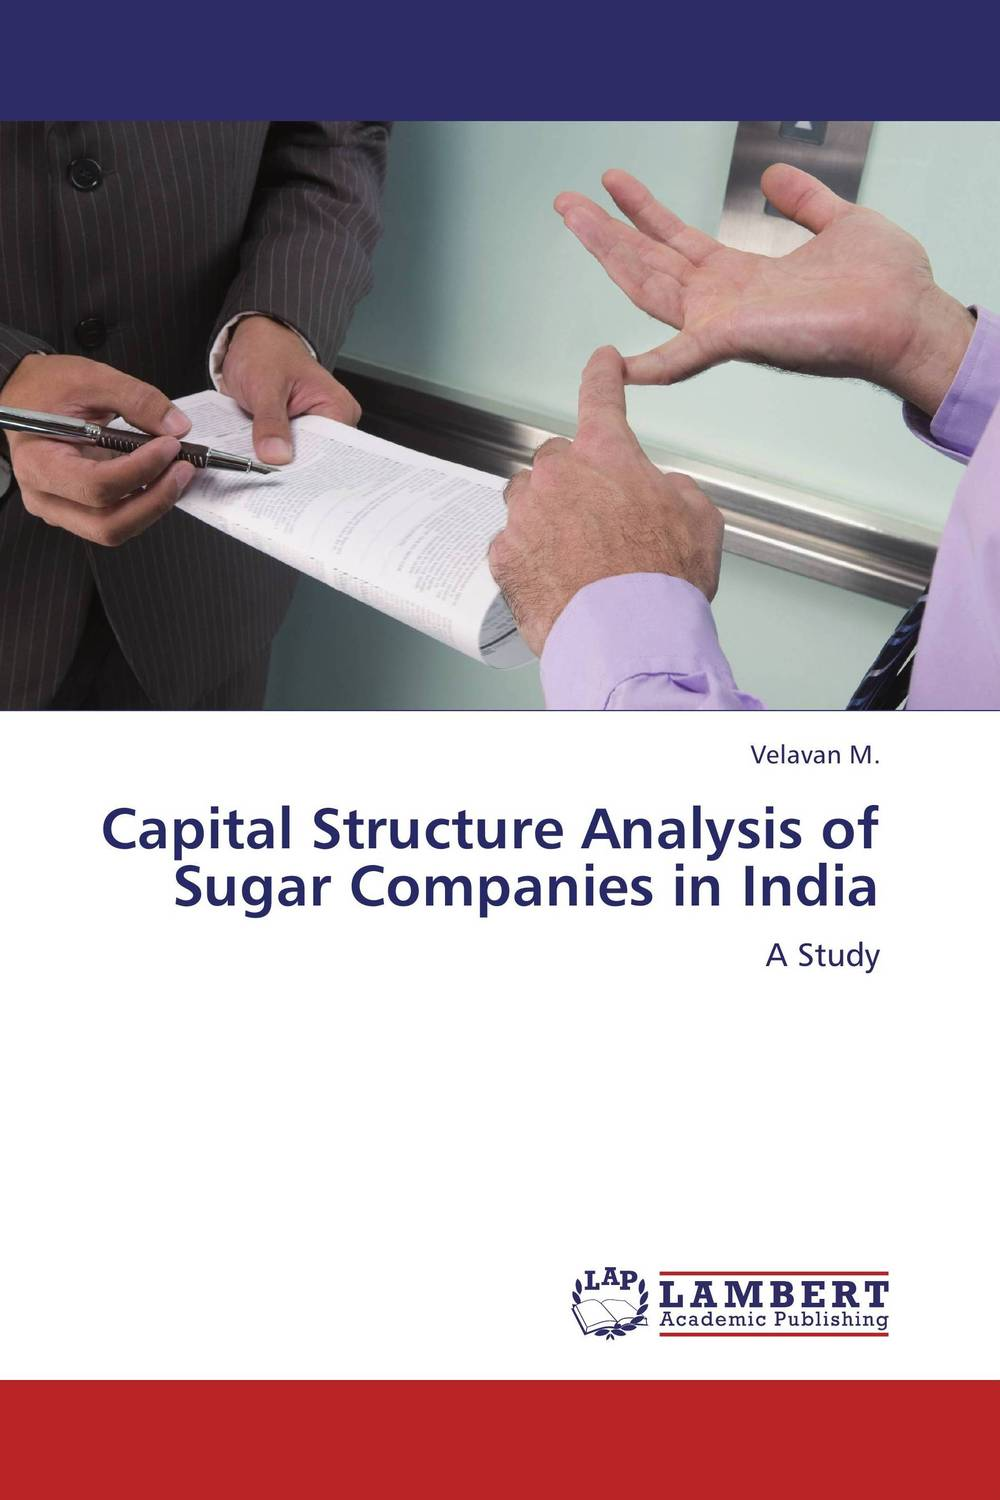 Capital Structure Analysis of Sugar Companies in India james sagner working capital management applications and case studies